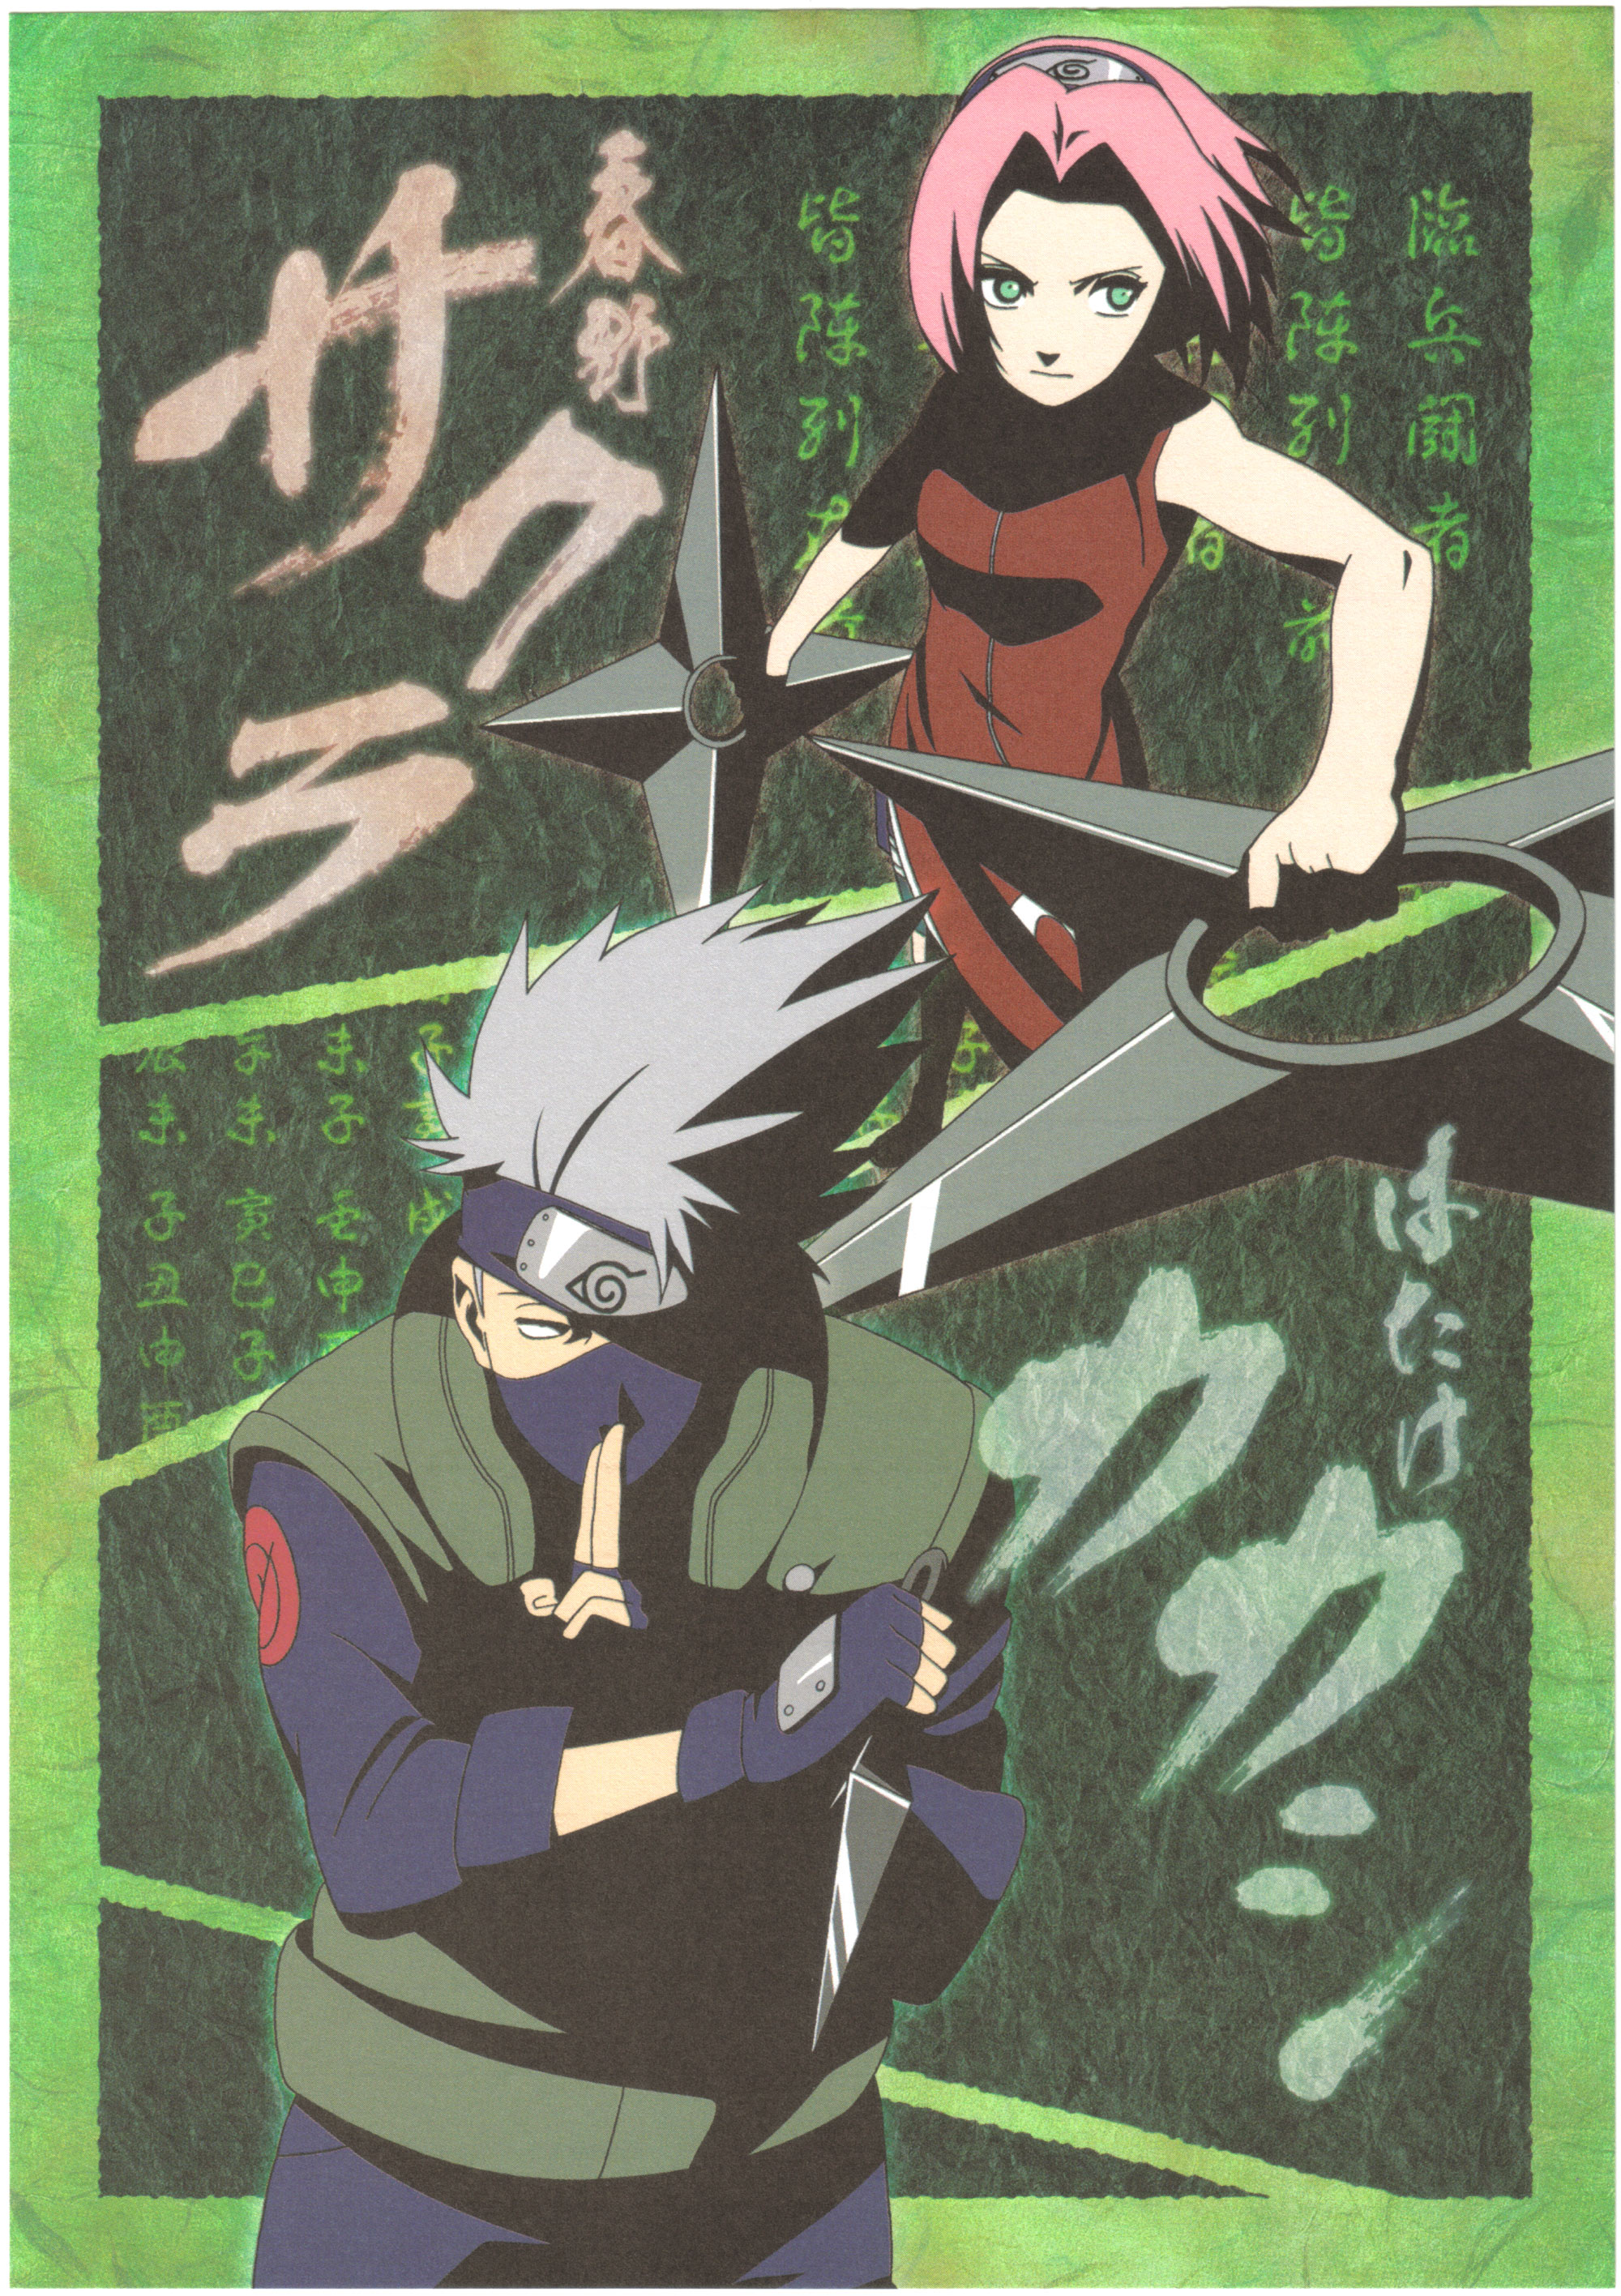 Kakashi Holds Kunai and Sakura Has Demon Wind Shurikens